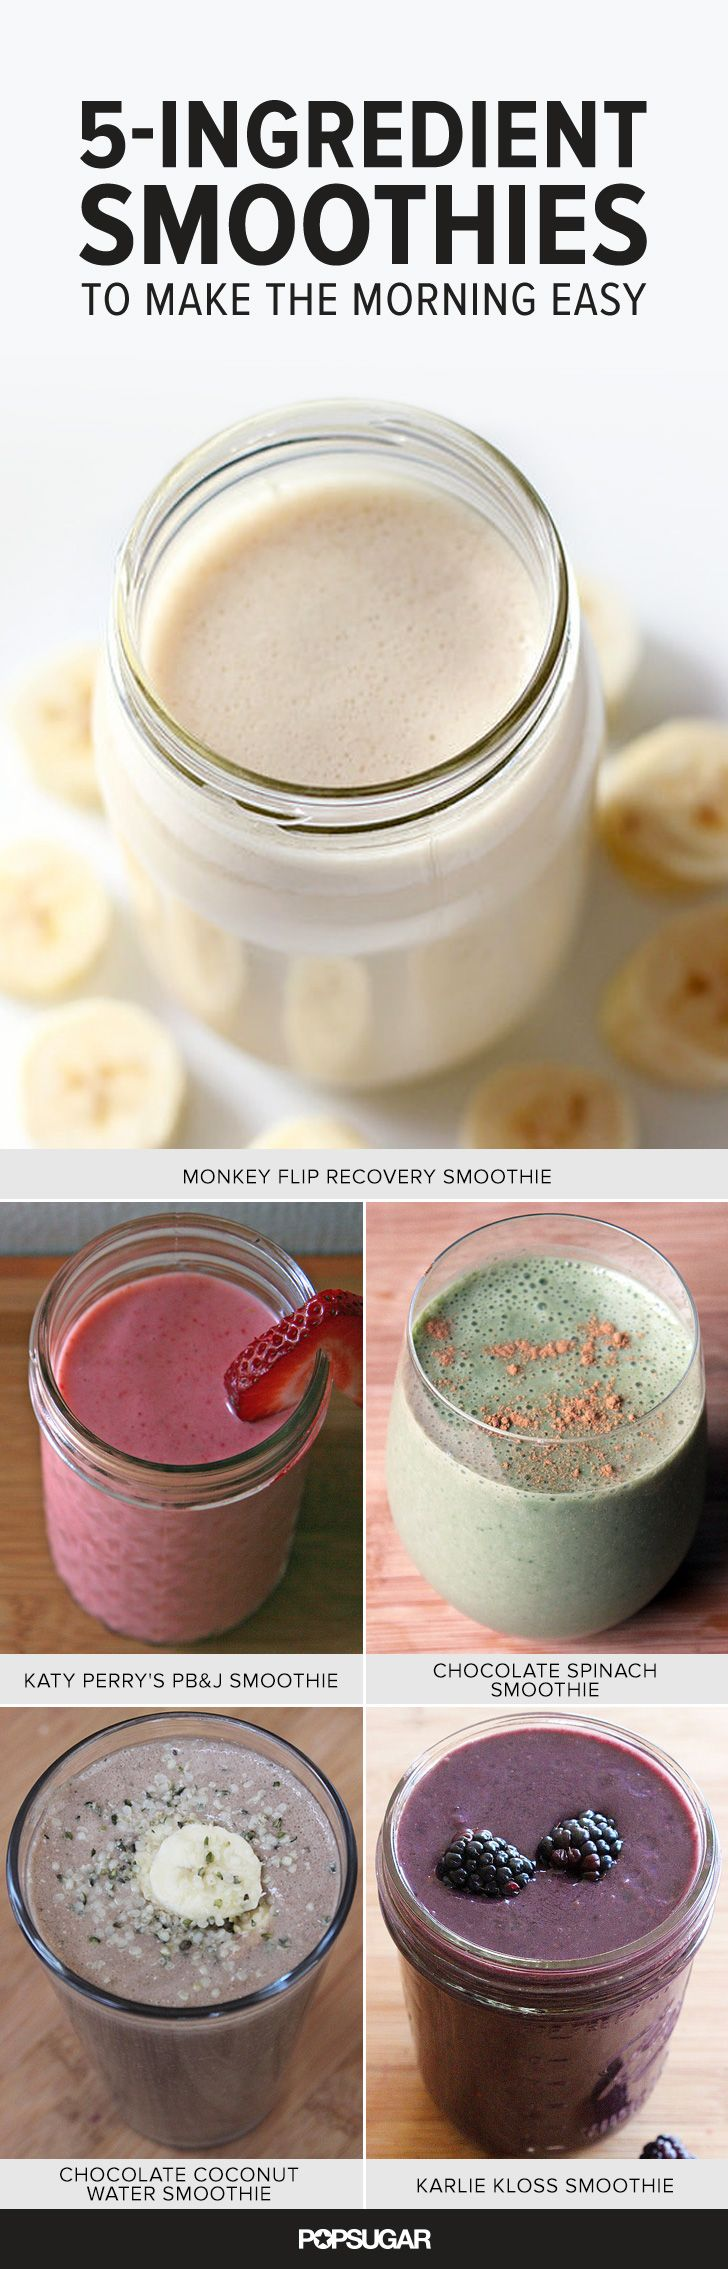 Here are some of our favorite smoothie recipes that keep breakfast easy with five ingredients of less! They're the ultimate satisfying and refreshing breakfast.